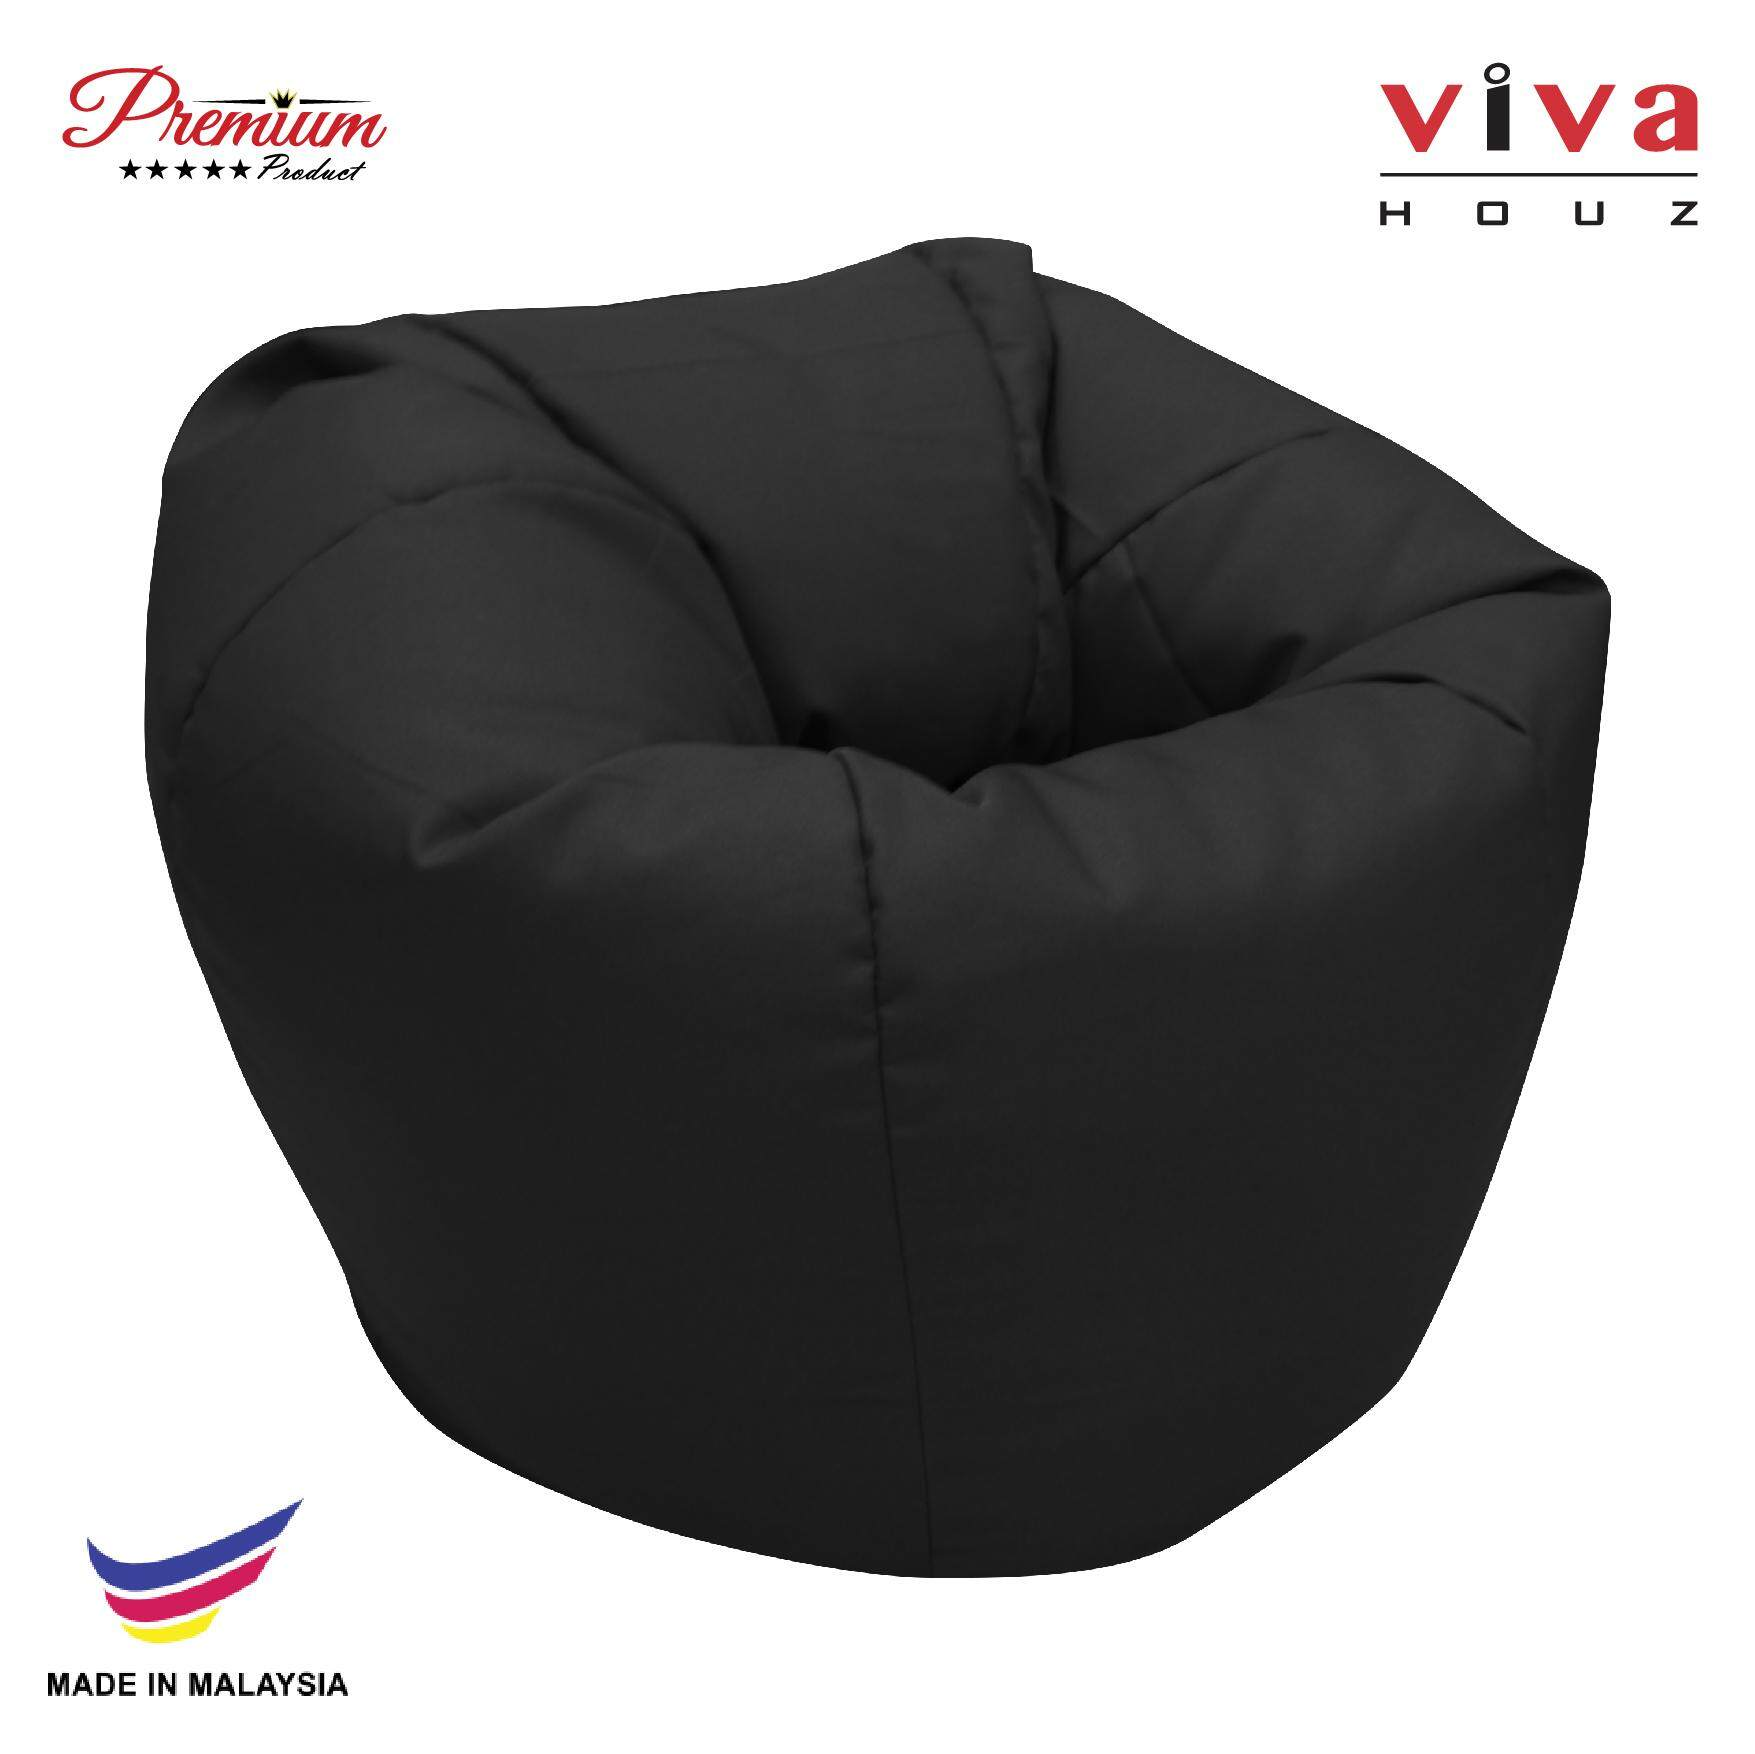 Hot Selling : Perfect Bean Bag Sofa Pouffe Chair Black Made In Malaysia By Viva Houz.